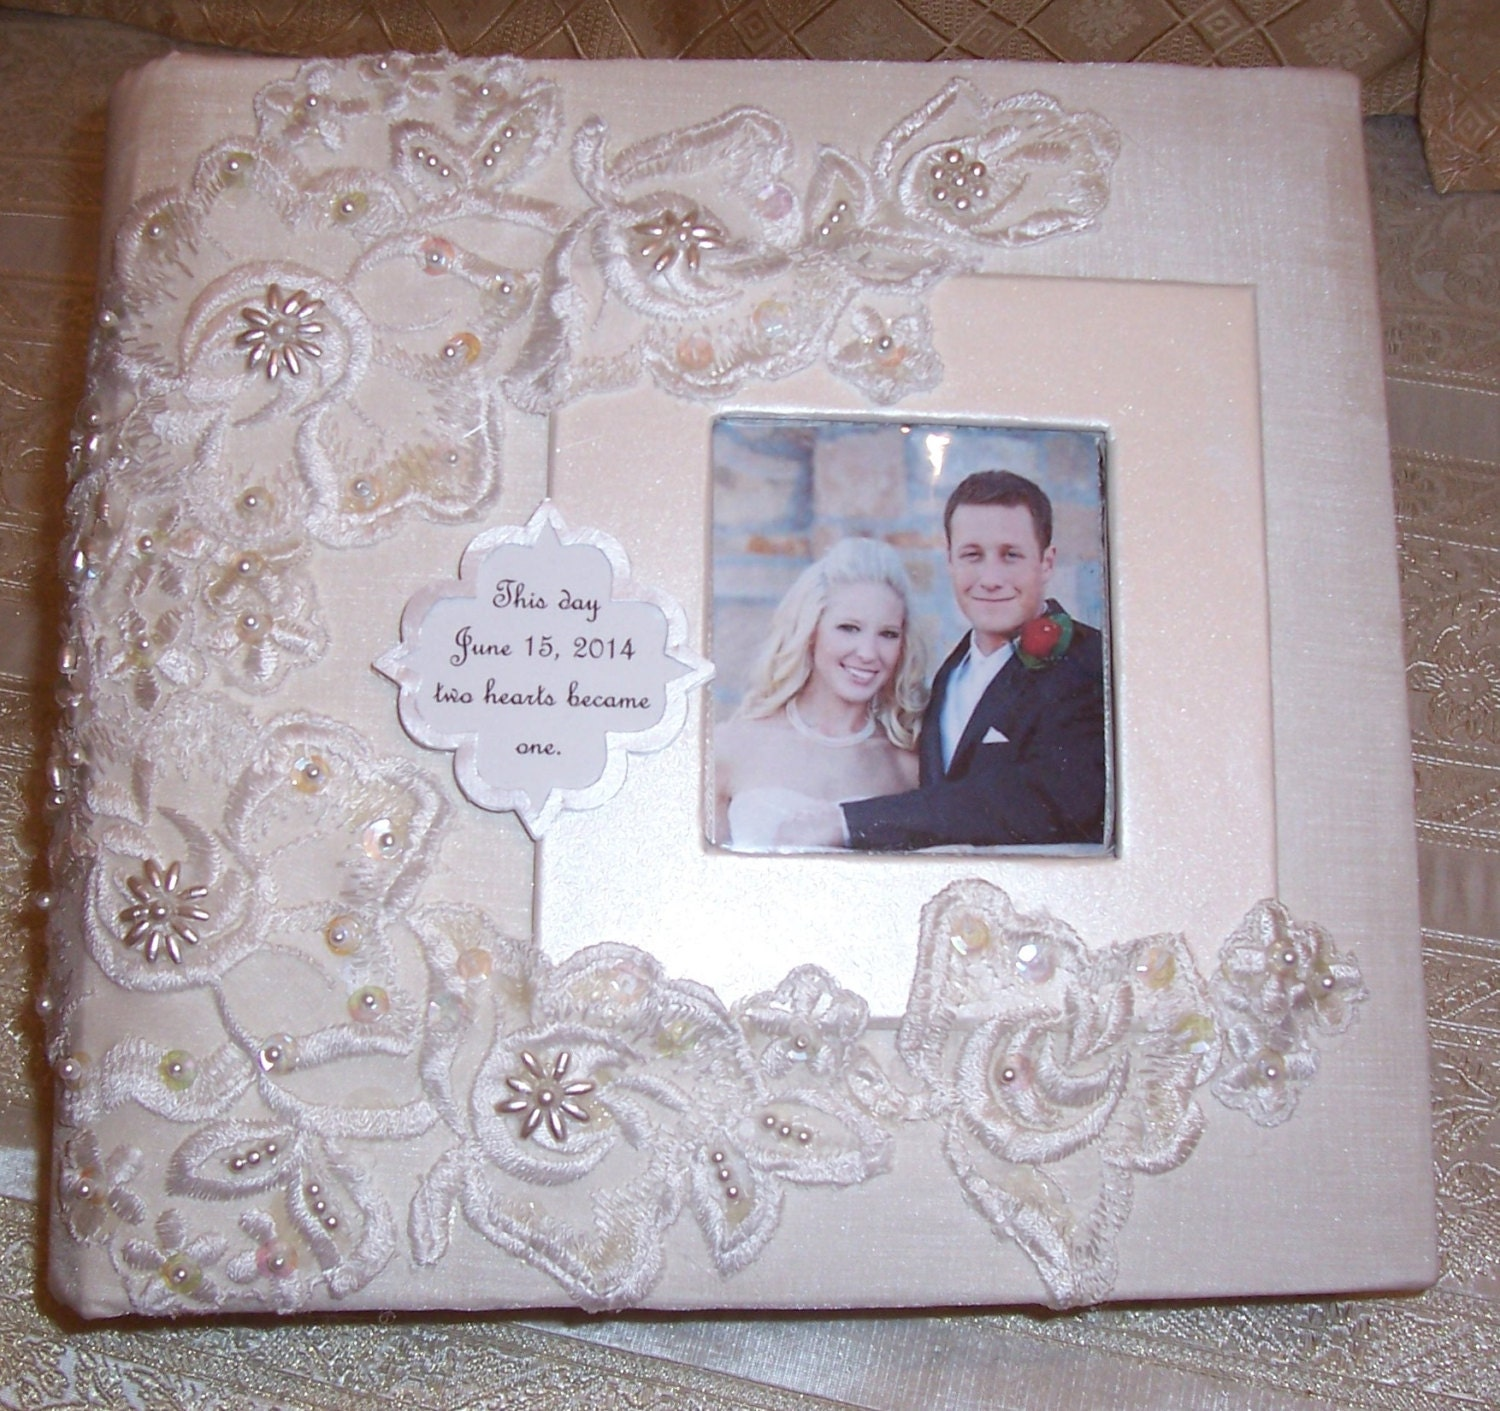 Personalised Wedding Photo Albums: Wedding Photo Album Personalized Date &names 4 By